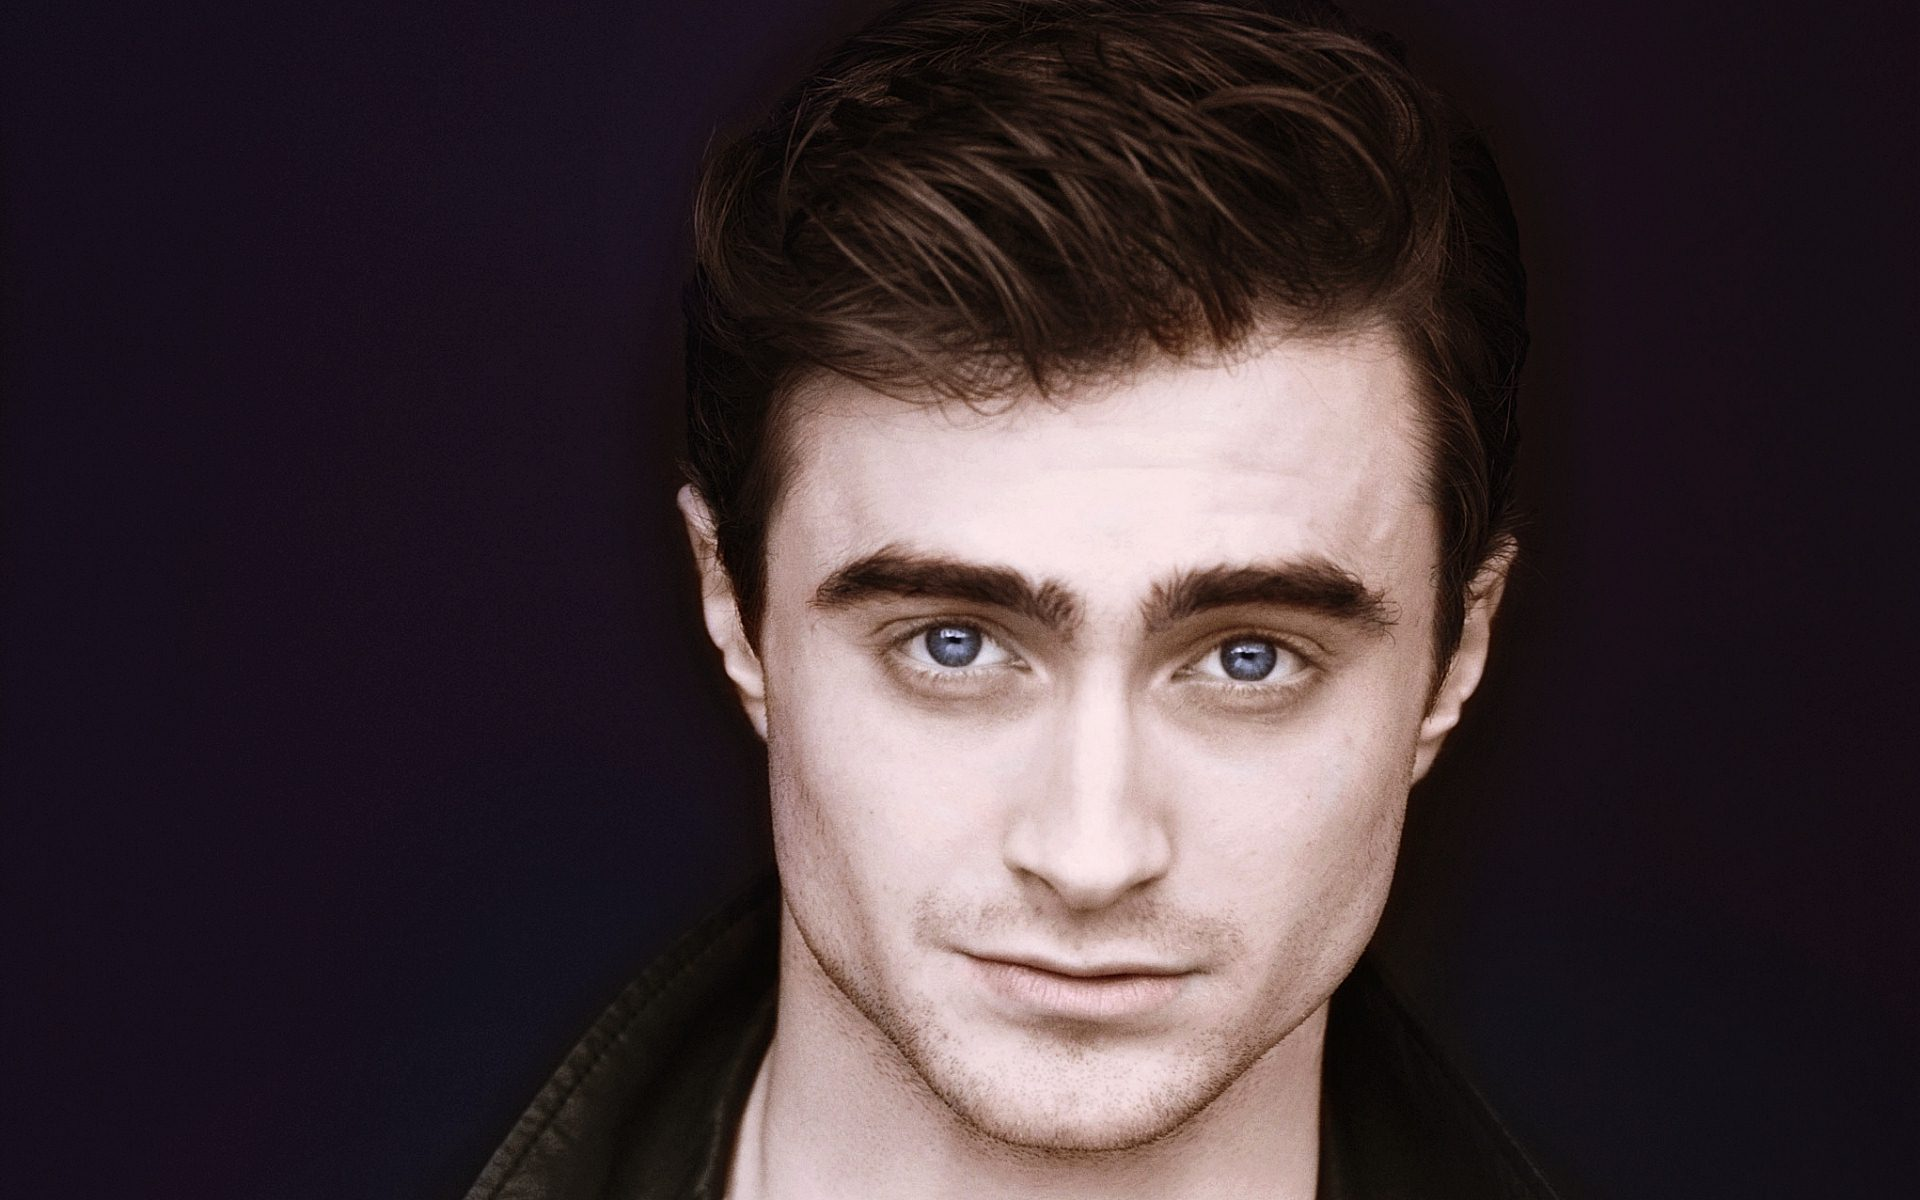 Daniel Radcliffe Best Movies and TV Shows. Find it out! Daniel Radcliffe